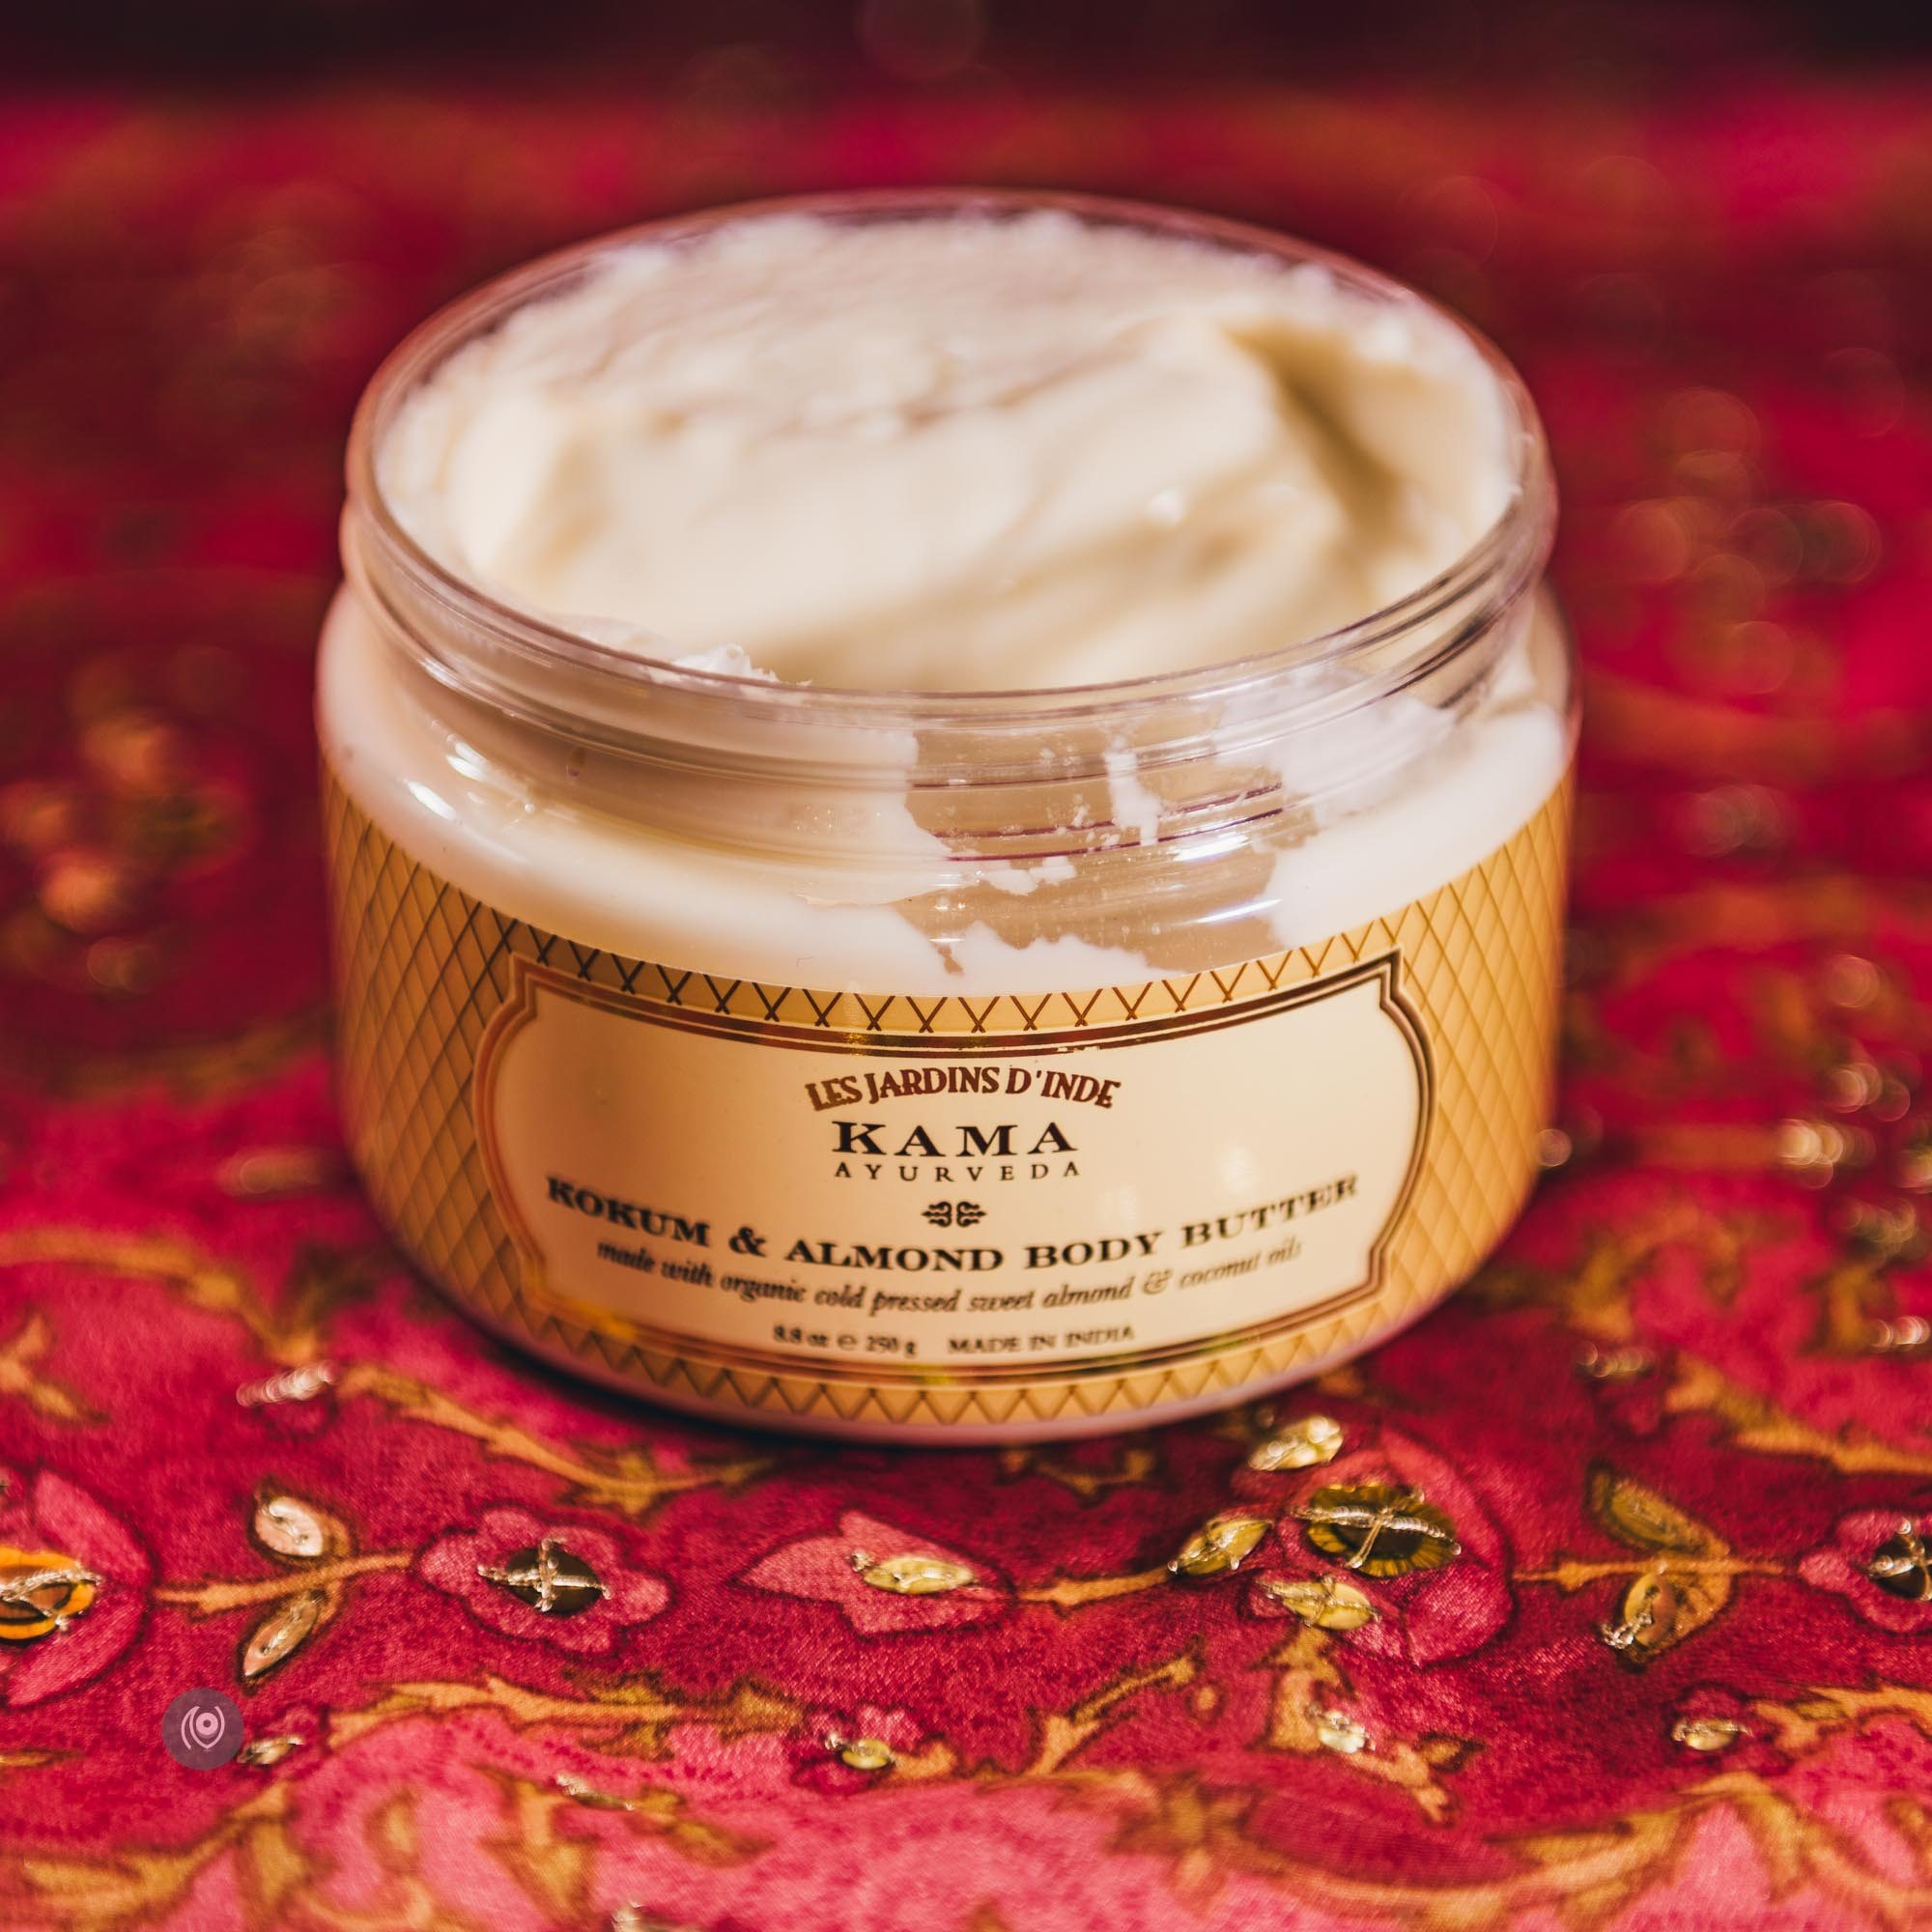 Naina.co-Luxury-Lifestyle-Photographer-Dec15-Kama-Ayurveda-EyesForBeauty-Winter-Care-SinCare-09